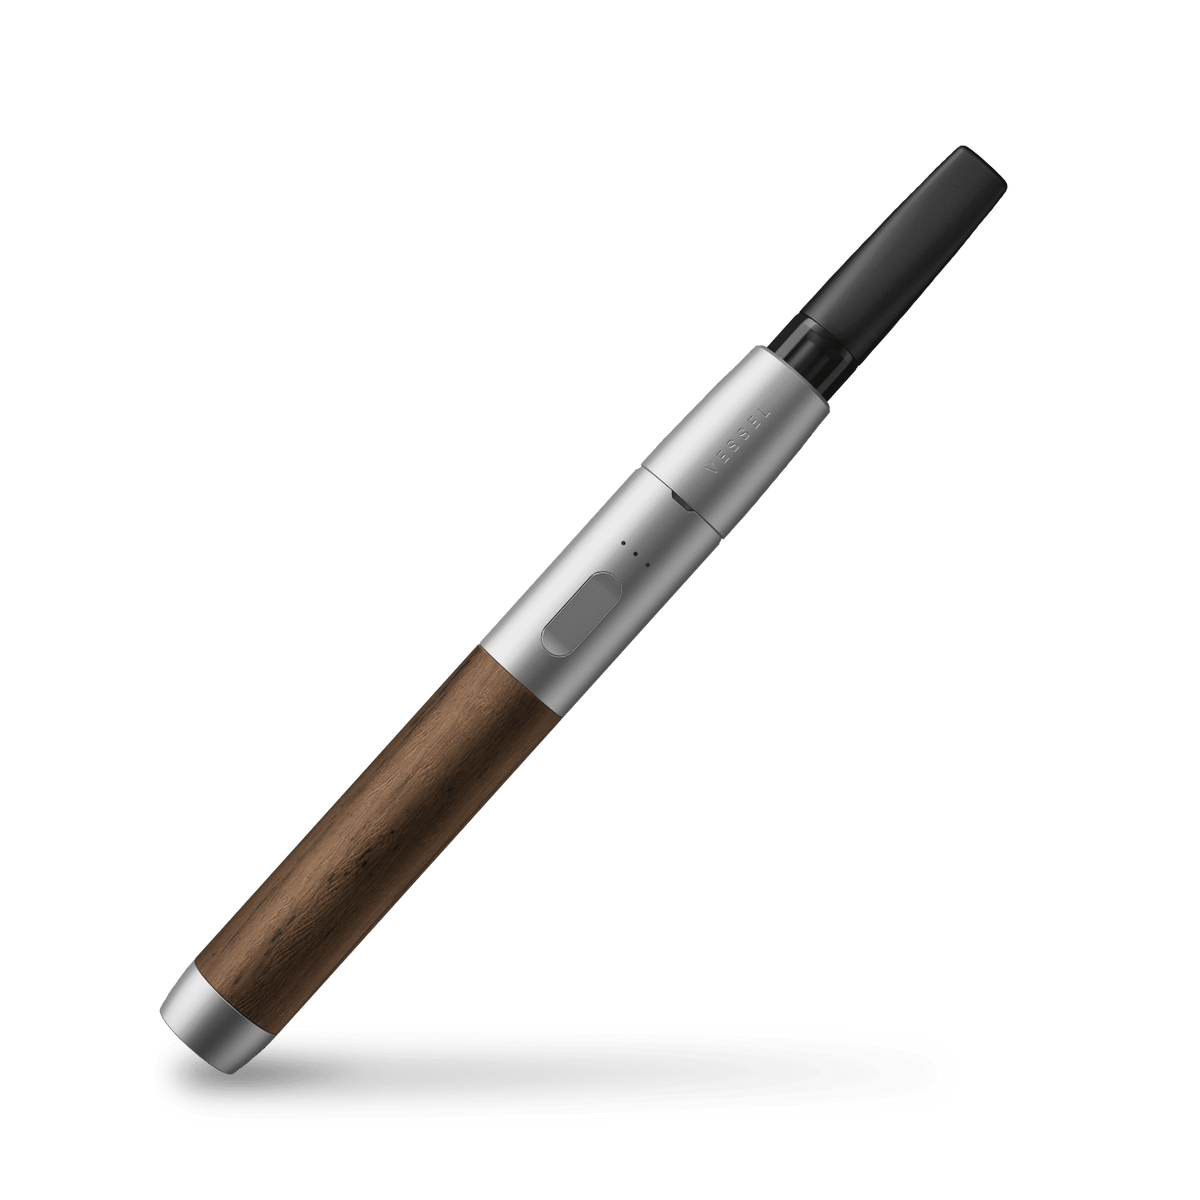 Vessel Wood Vape Pen Battery in Silver with Walnut